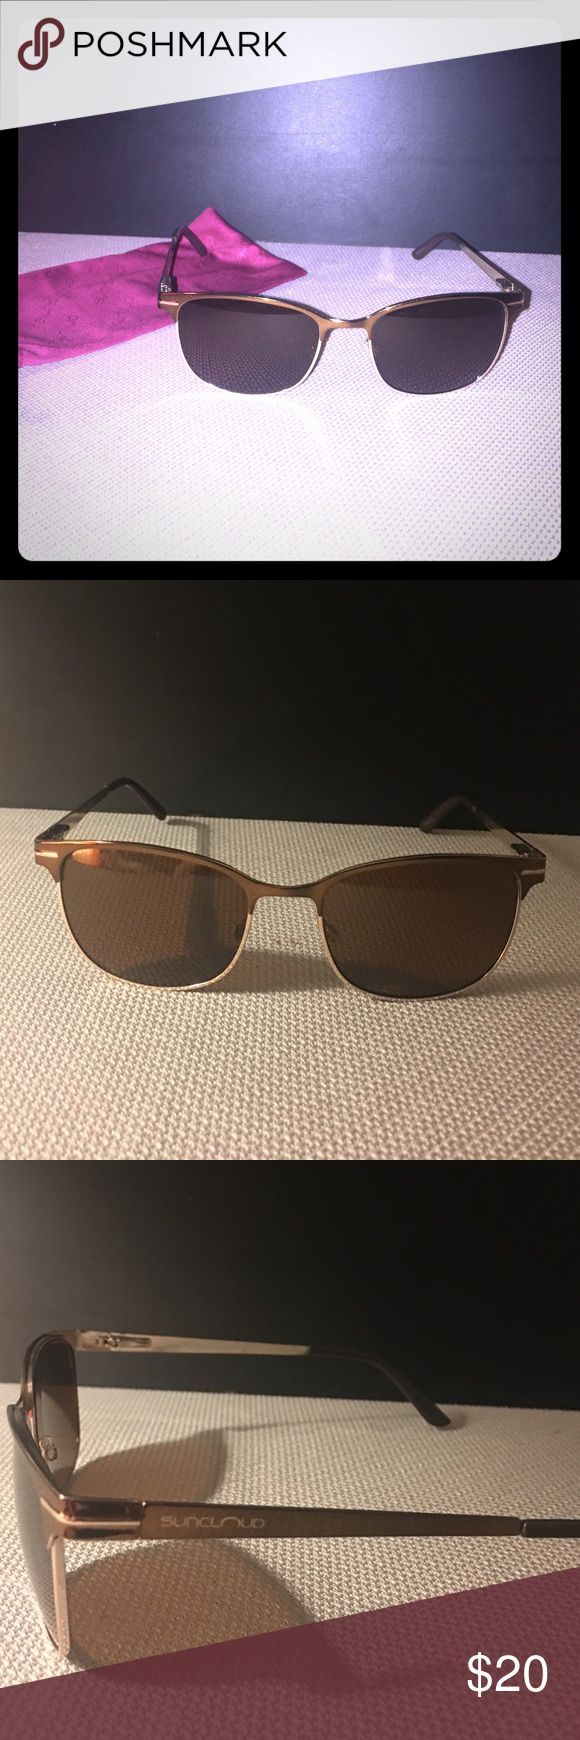 Suncloud polarized sunglasses Gently used Suncloud sunglasses. No scratches. In original pouch Other